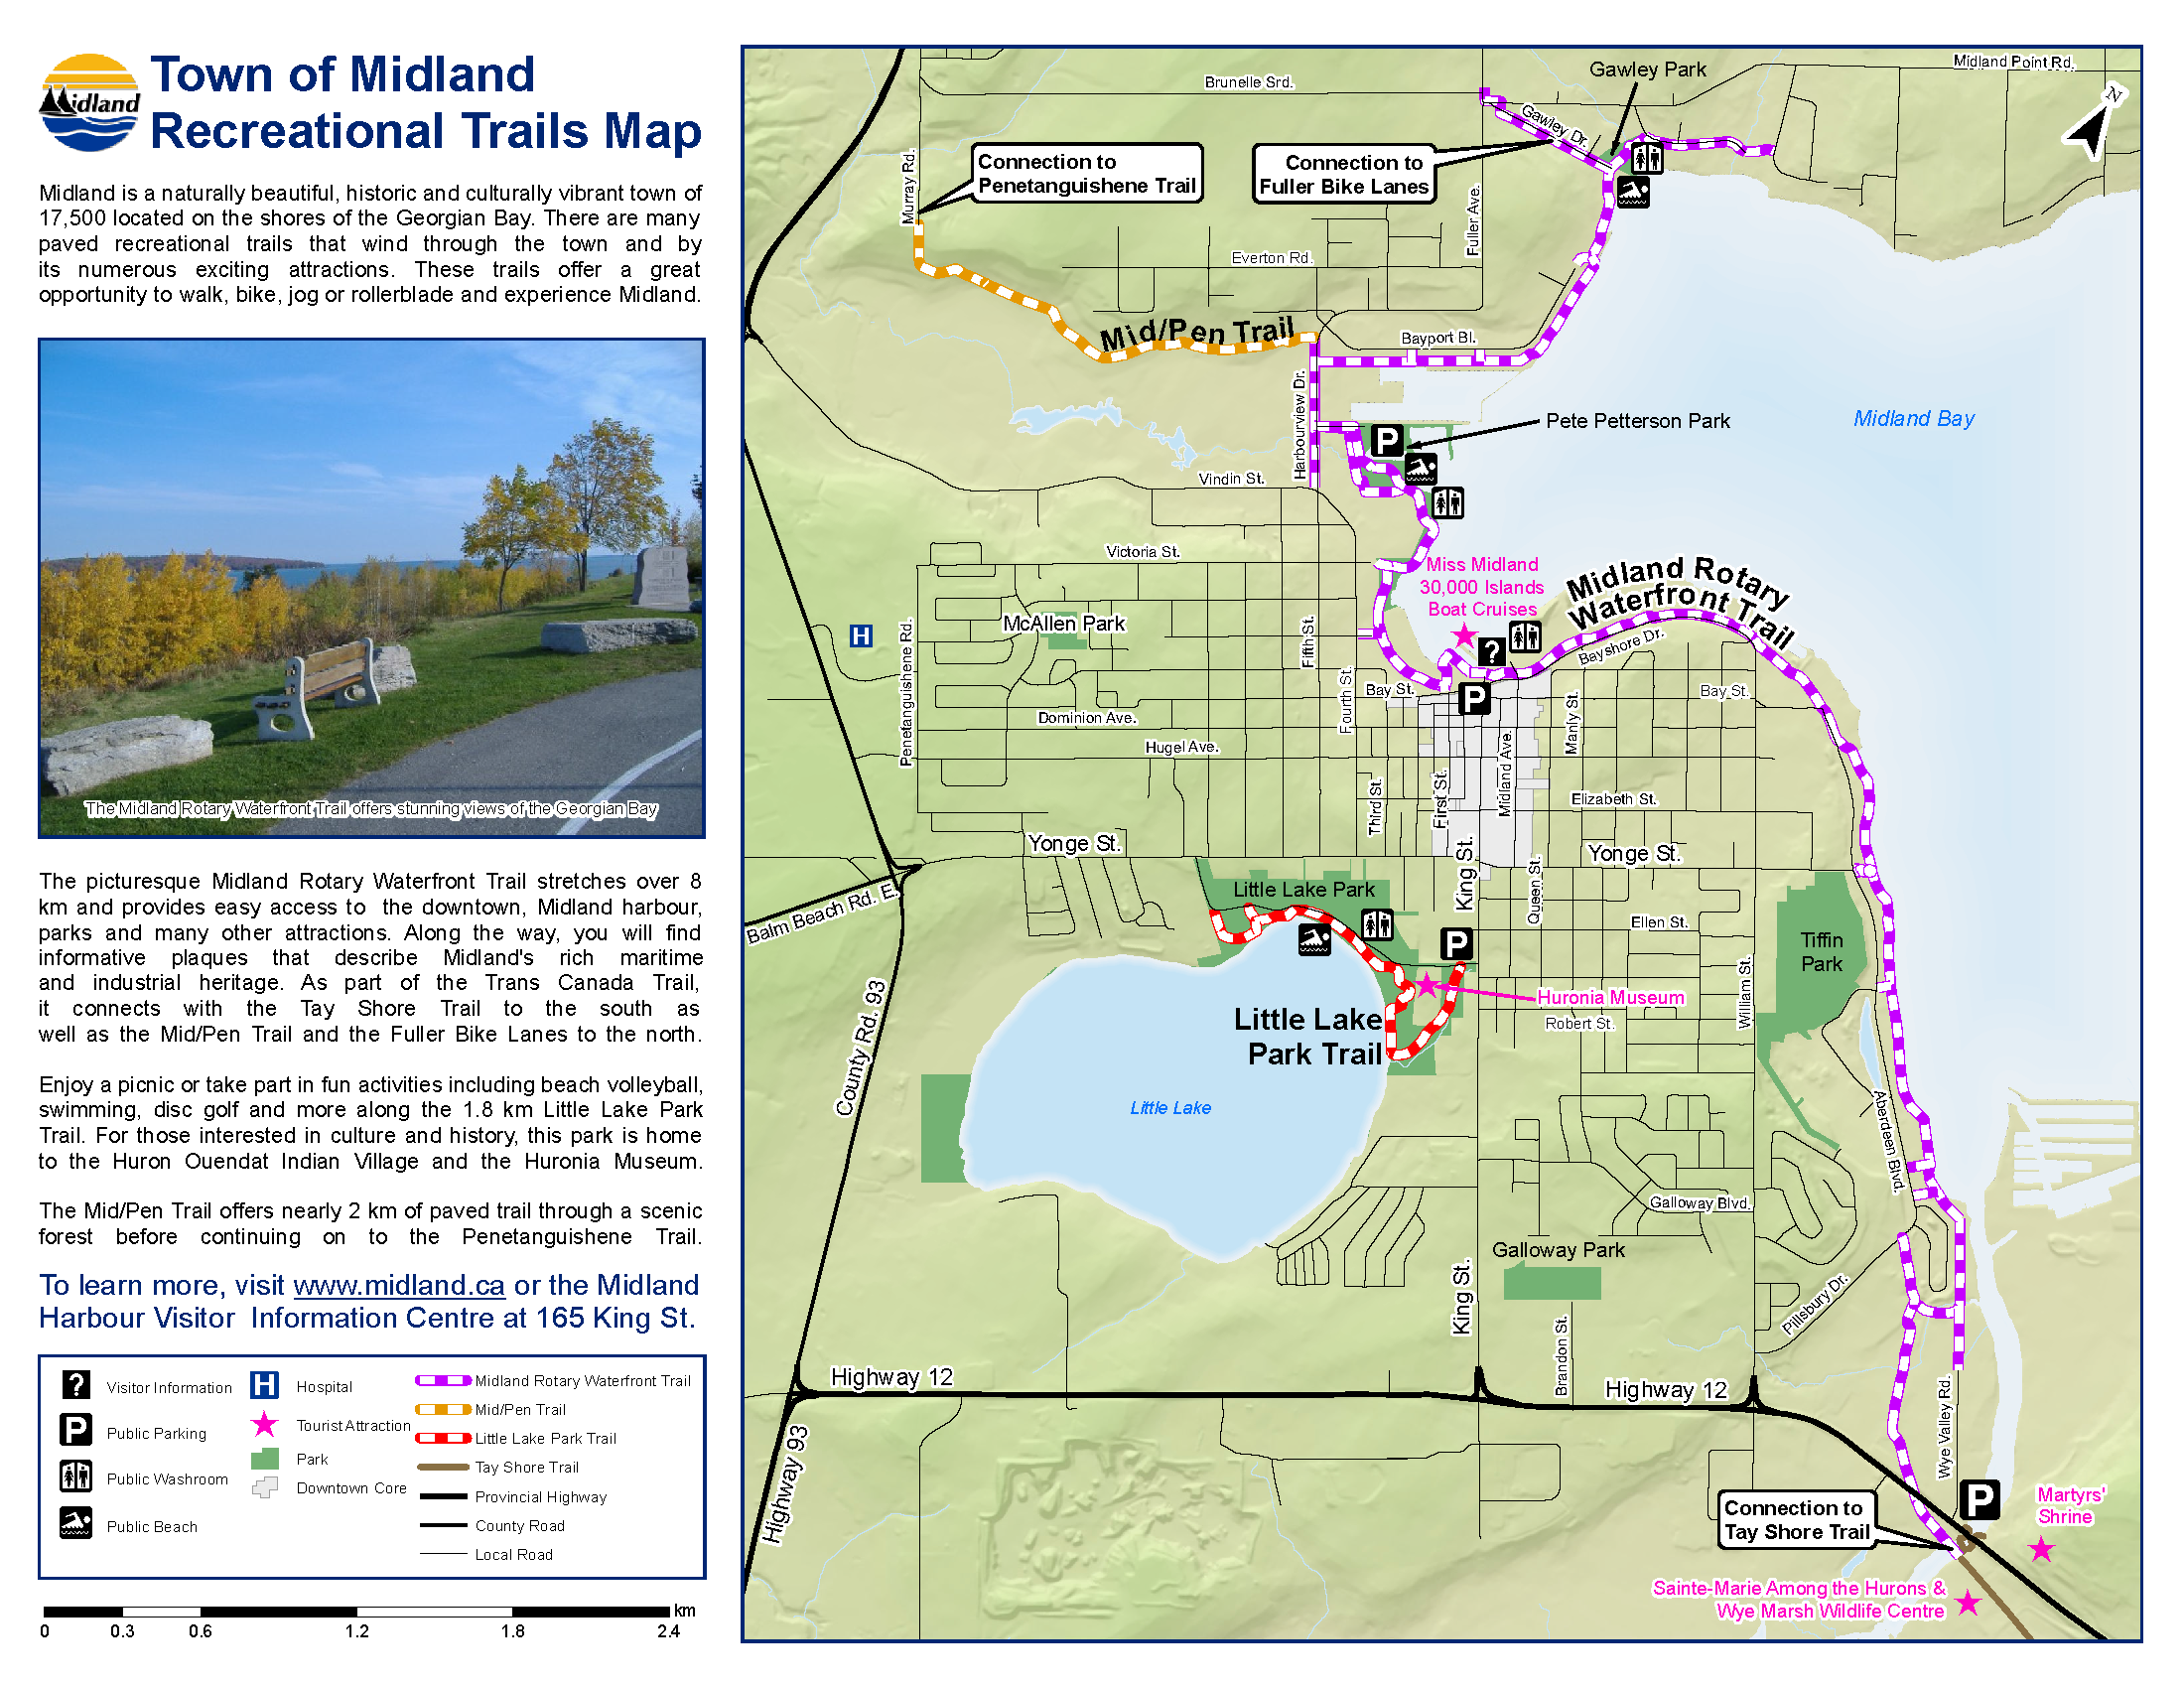 Midland Rec Trails Map 8x11.png